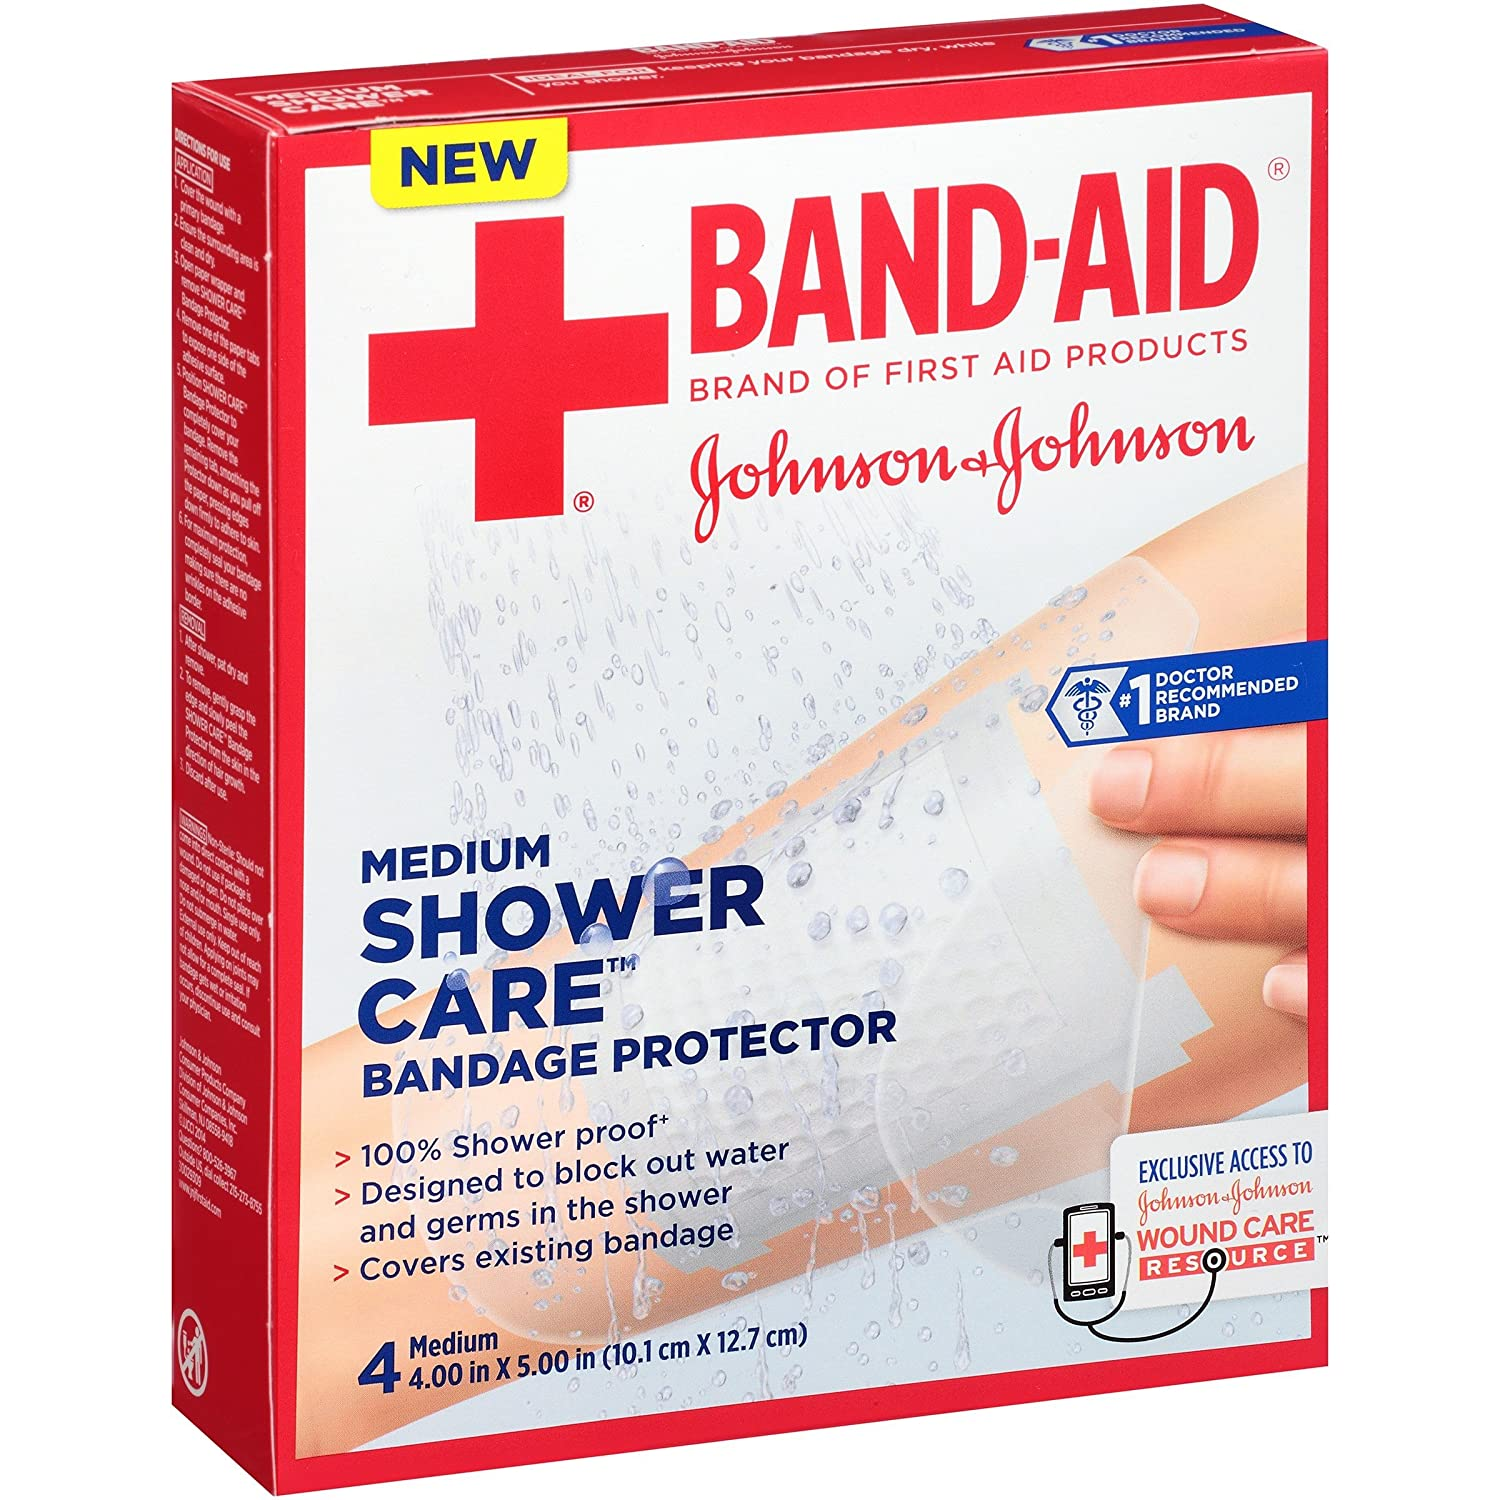 Amazon.com: Band-Aid Brand Of First Aid Products Shower Care Medium ...